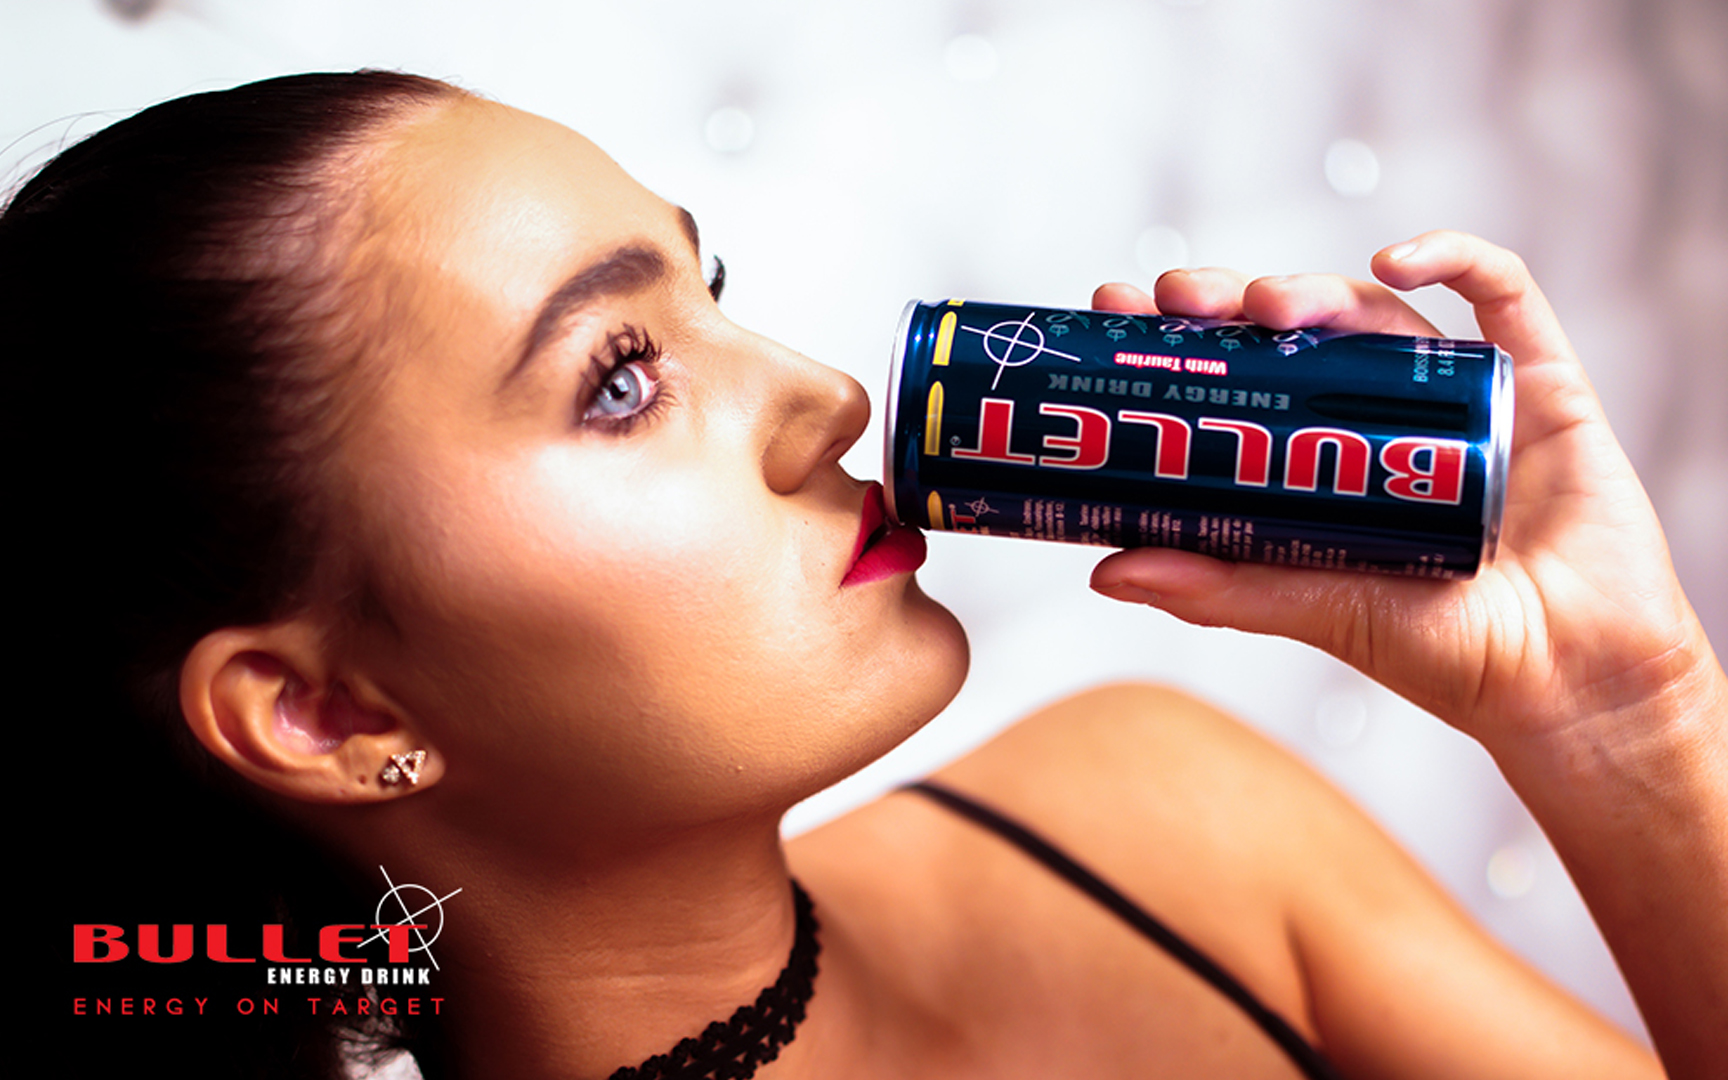 Bullet Energy Drink Official Poster